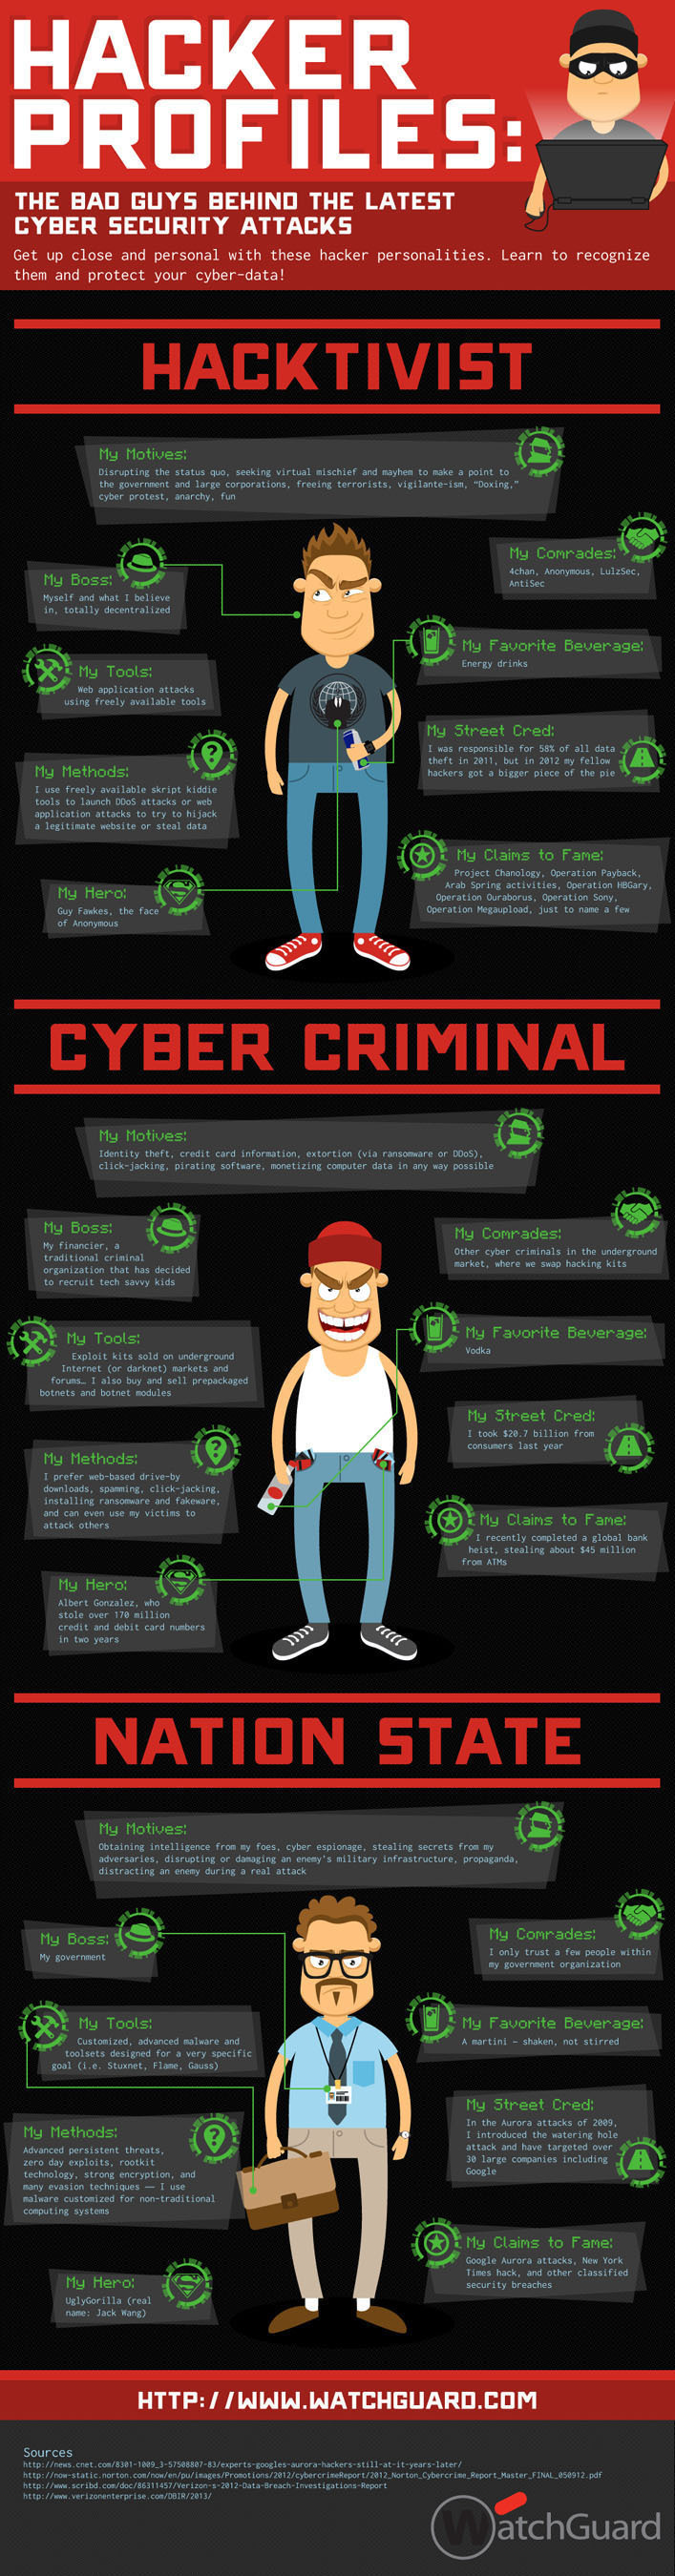 The latest infographic from WatchGuard Technologies depicts personas of the bad guys behind latest ...